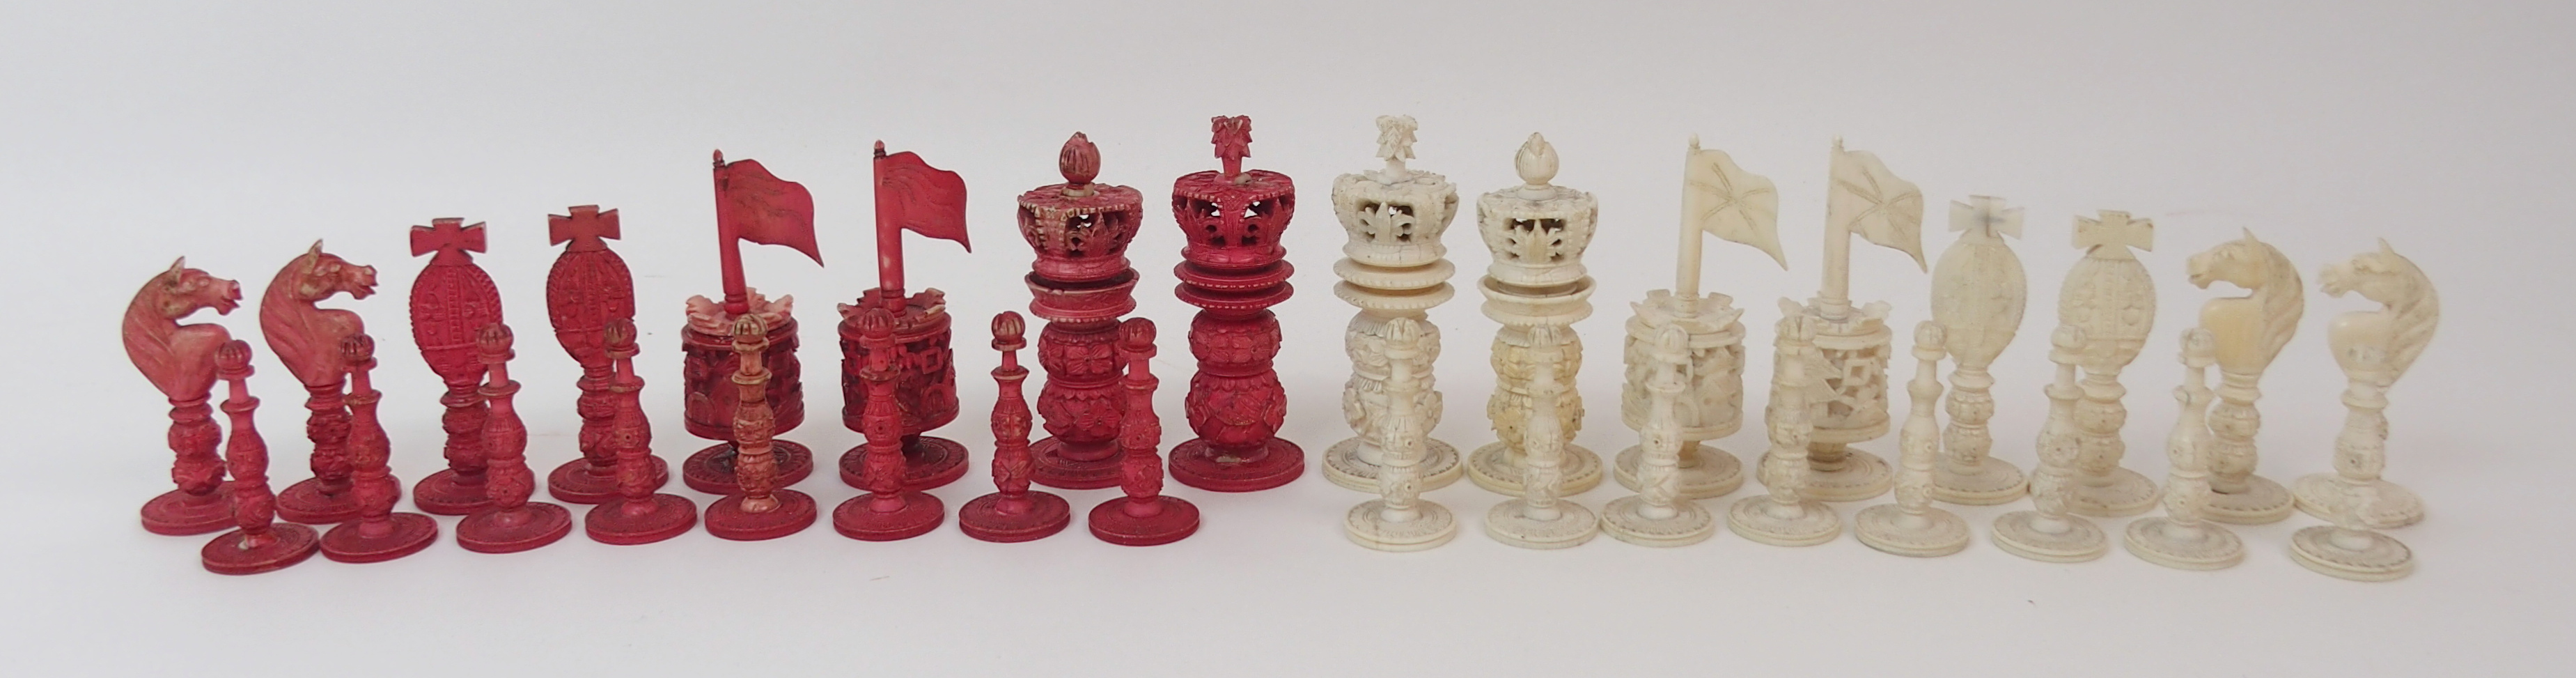 Lot 9 - A CHINESE EXPORT IVORY CHESS SET of typical form, one red stained set, pawns, 5cm high, Kings, 8cm